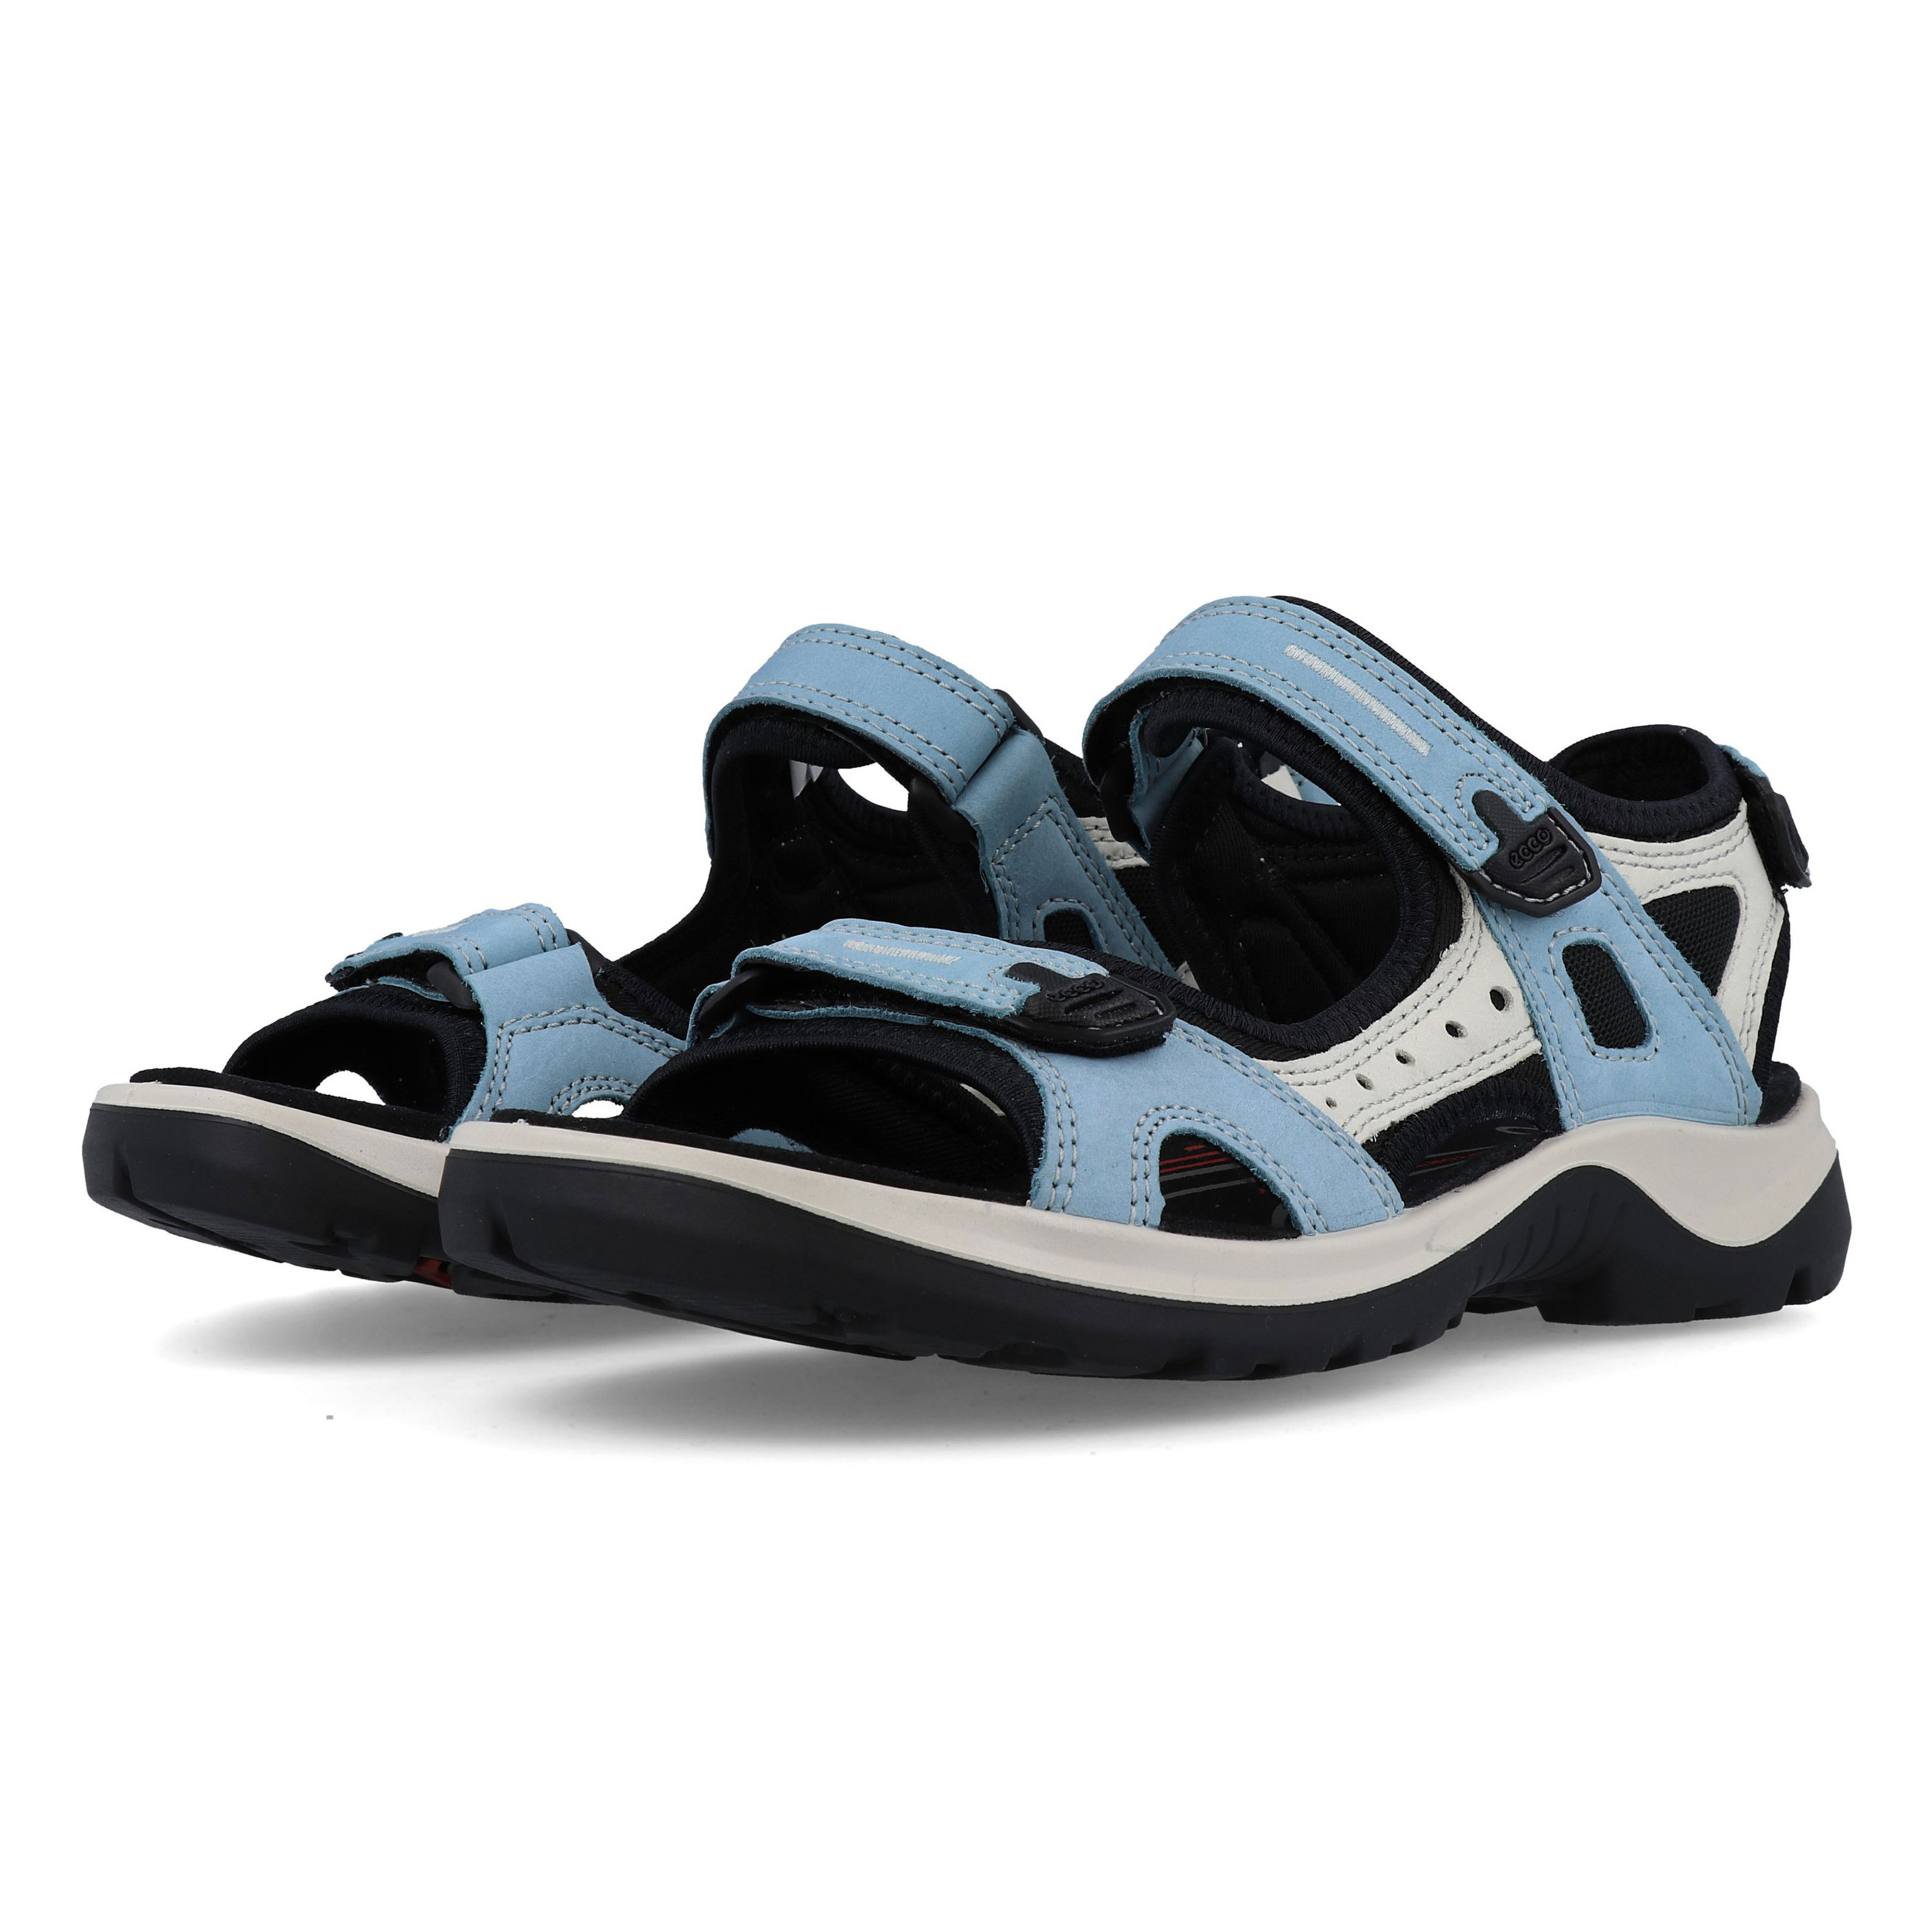 Details about Ecco Womens Offroad Walking Shoes Sandals Blue Sports